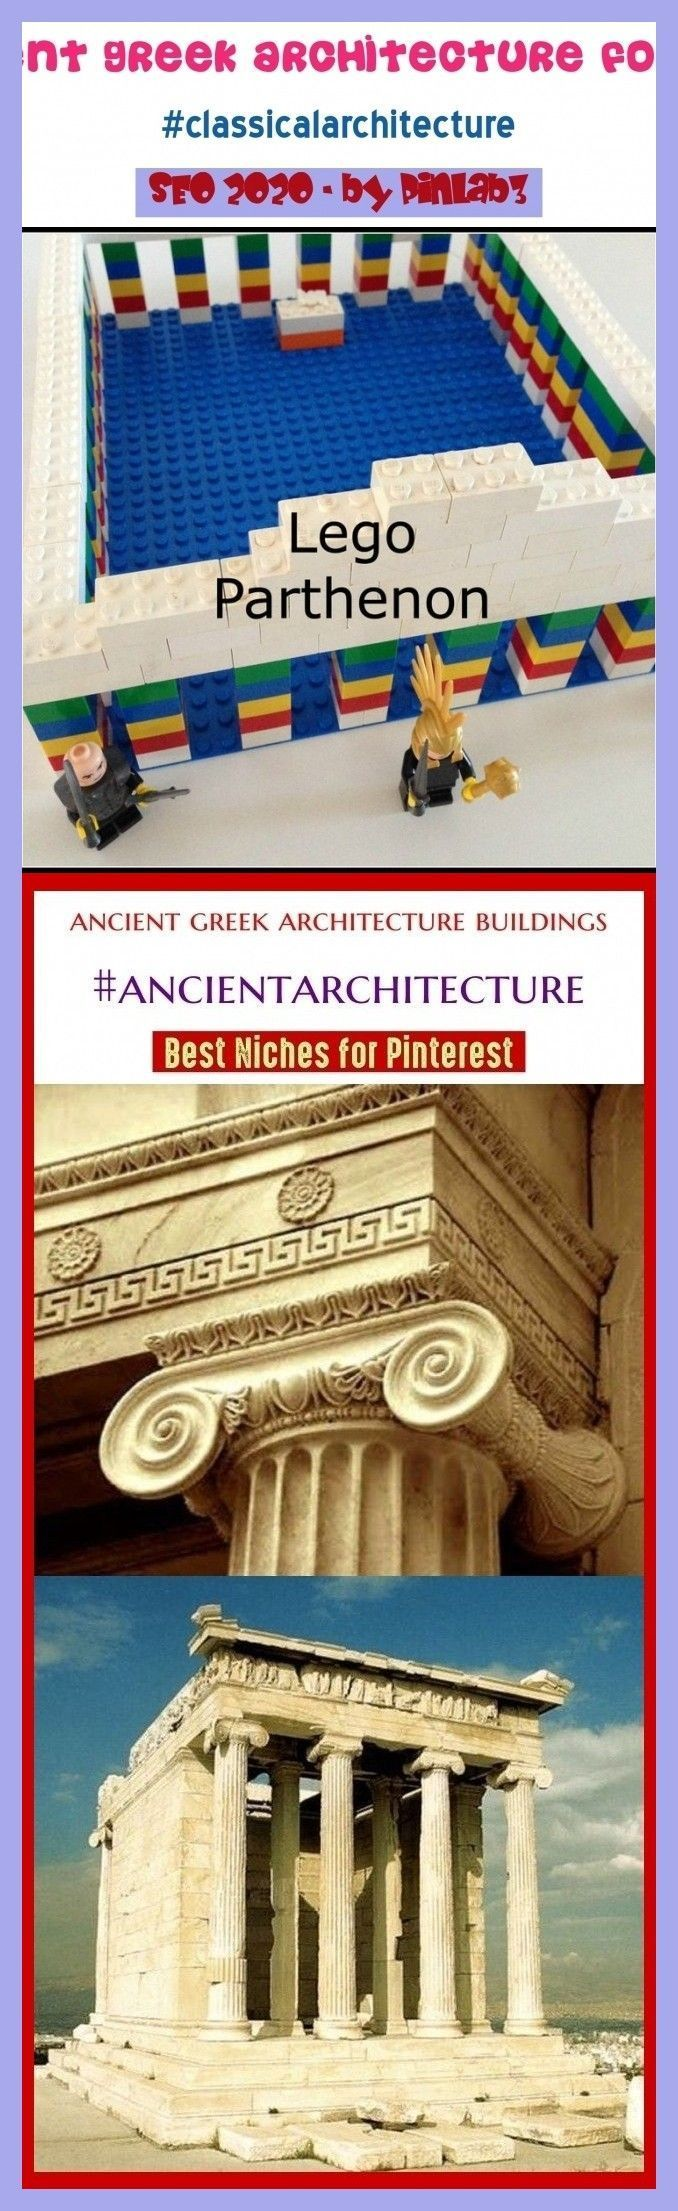 Ancient Greek Architecture Aesthetic Classical Architecture Housedesigninterior Classical In 2020 Ancient Greek Architecture Ancient Architecture Architecture History